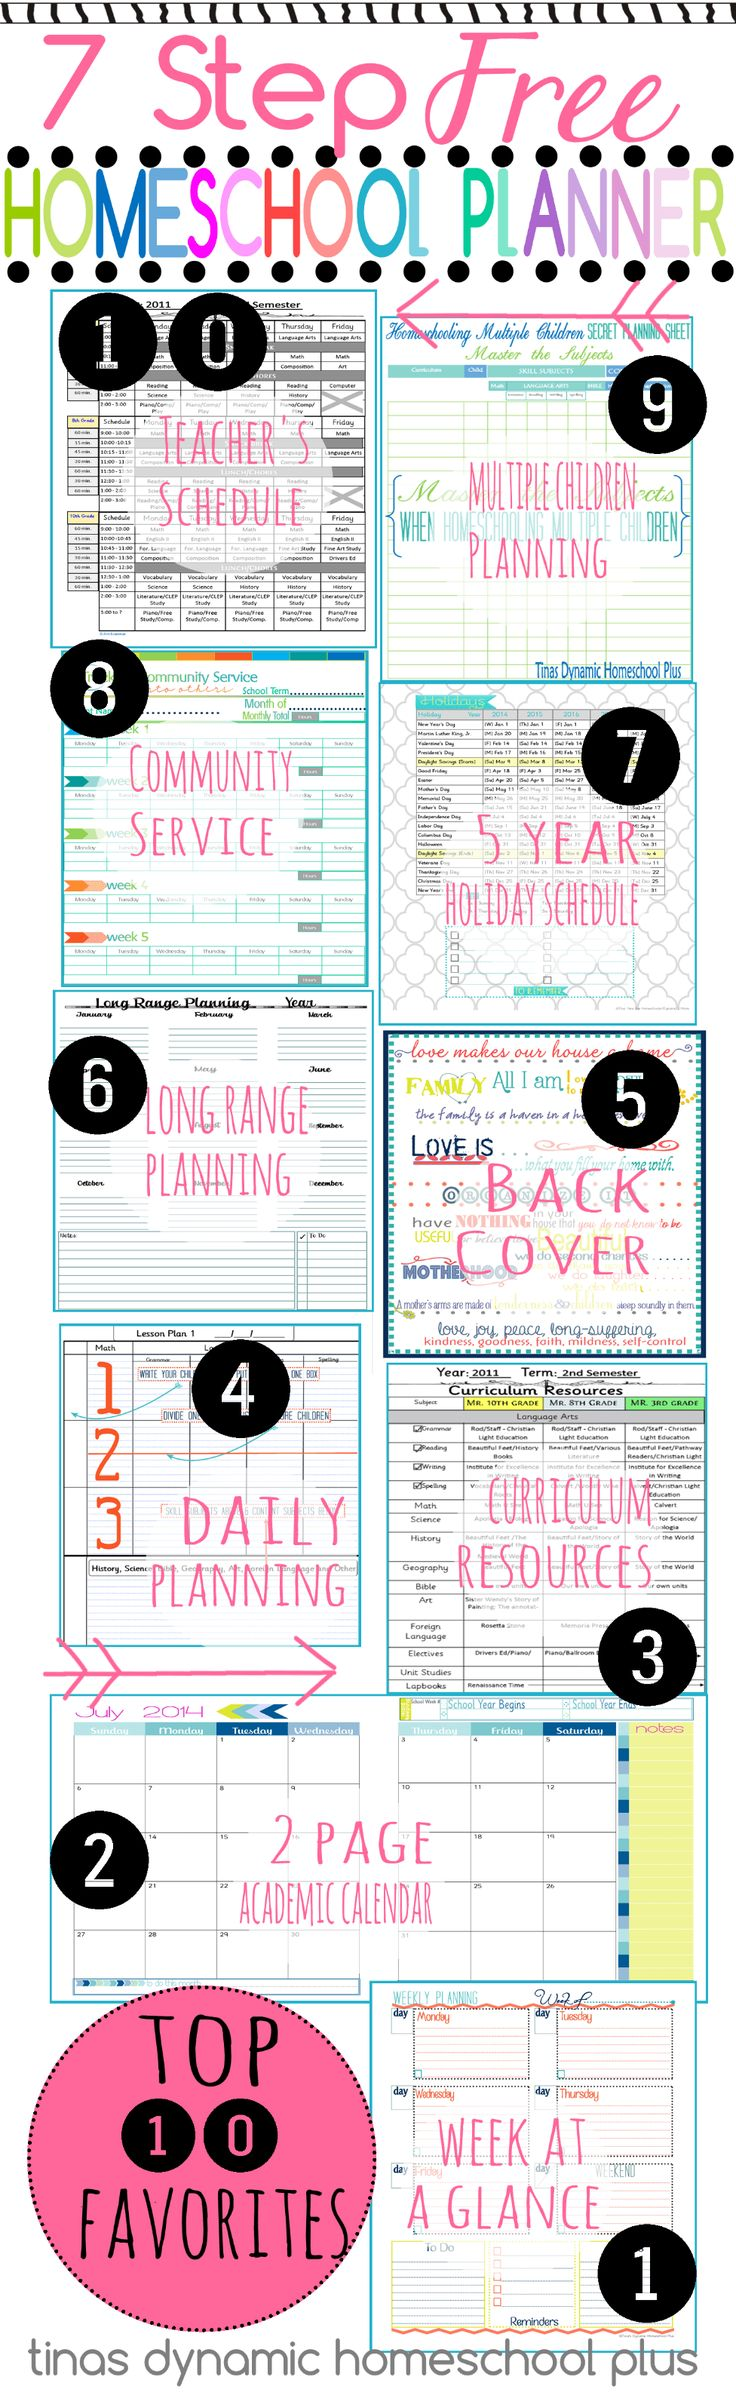 7 Step Free Homeschool Planner Top 10 Favorites | Tina's Dynamic Homeschool Plus #7stephomeschoolplanner